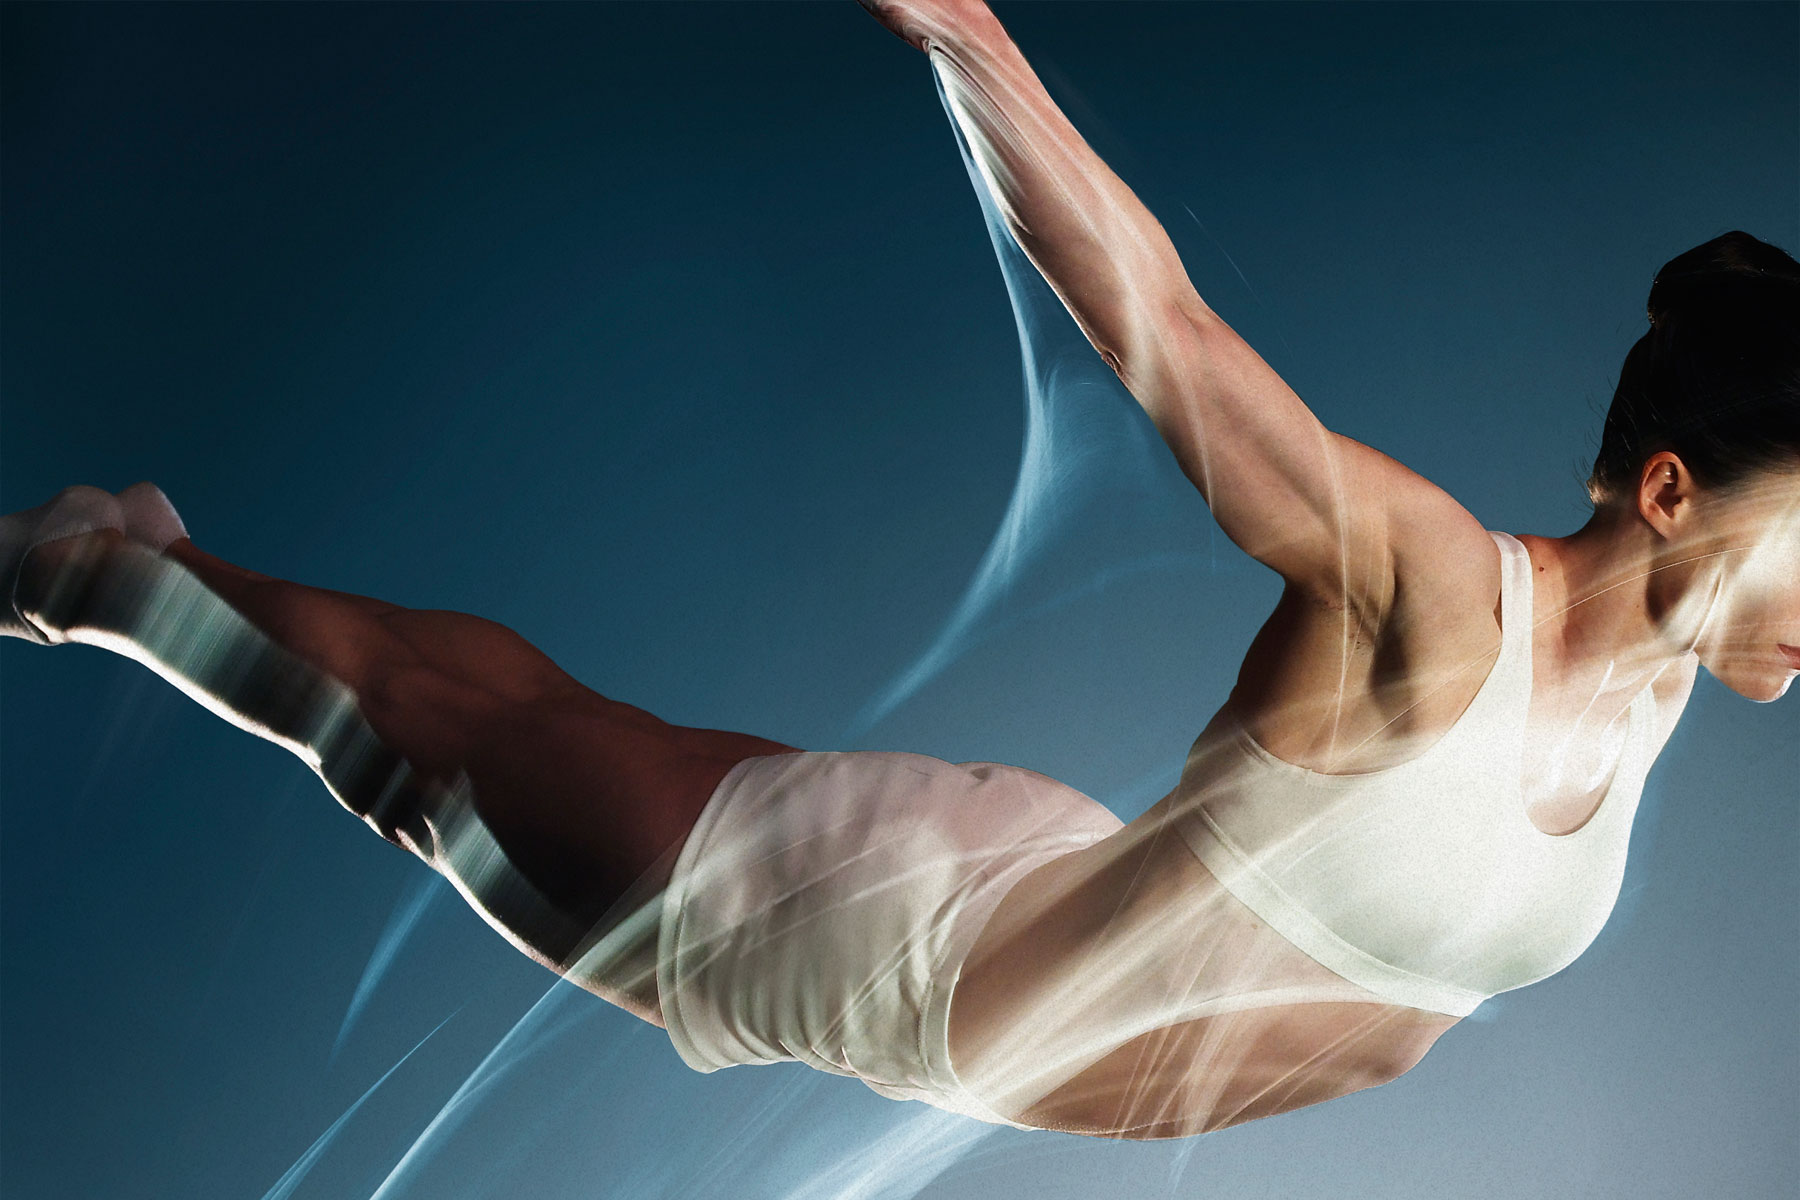 We created both full frame and detail imagery, where we captured a single gymnast up close. These images are especially useful for creating dynamic crops.